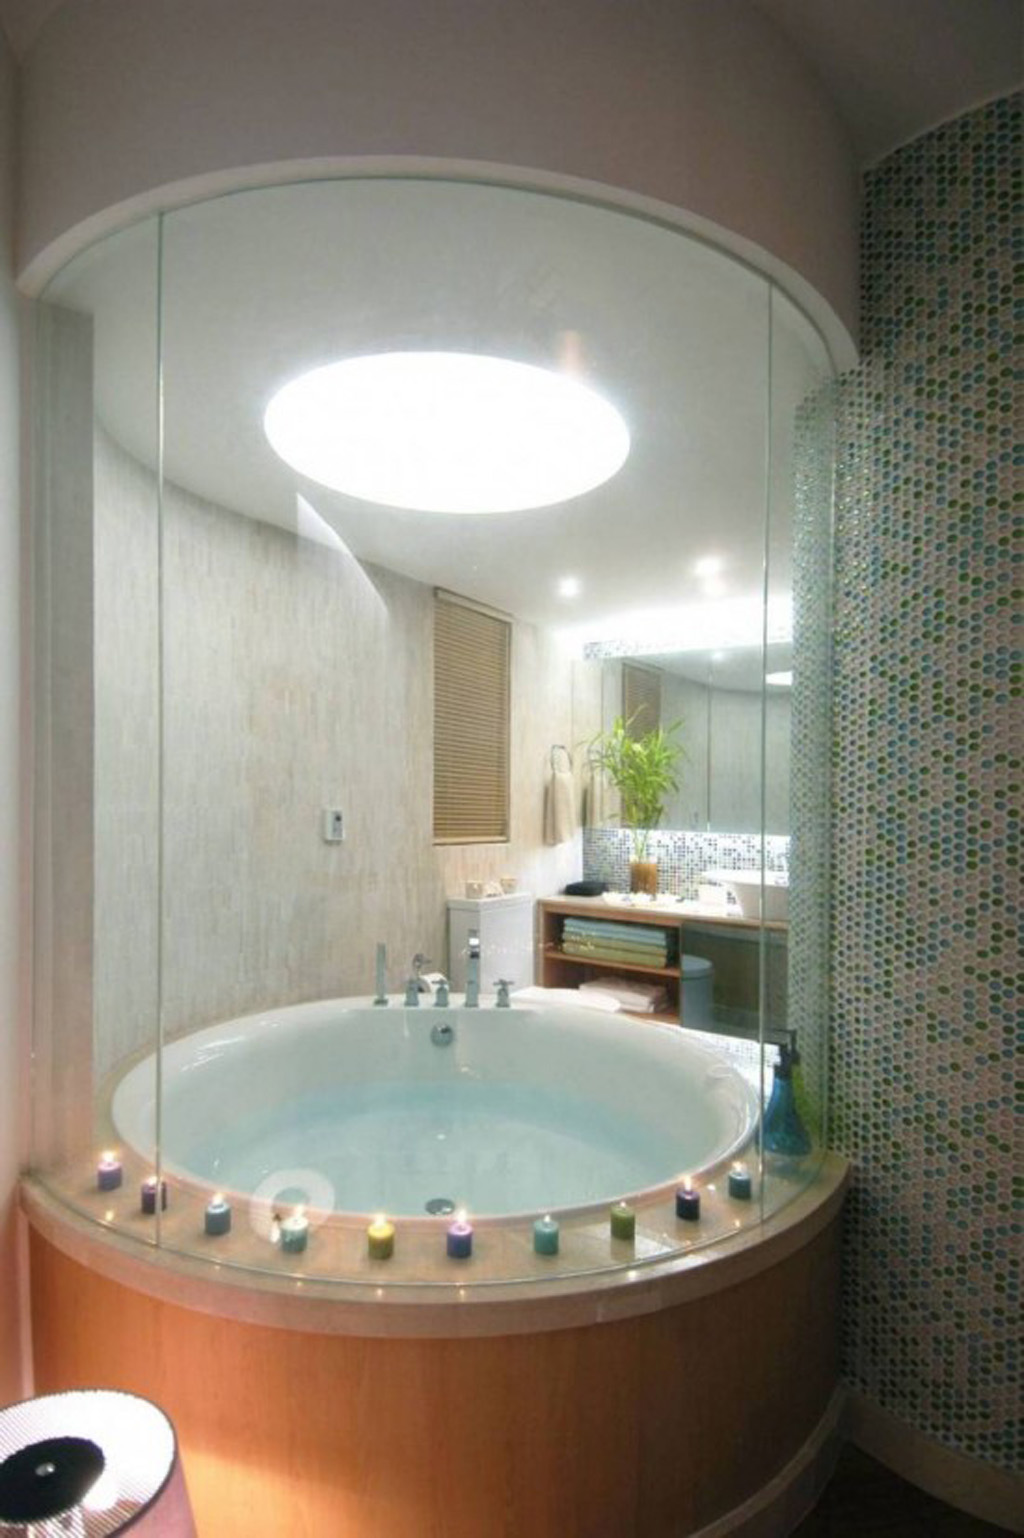 Innenarchitektur Badezimmer Decorative Bathroom Interior Design Iroonie